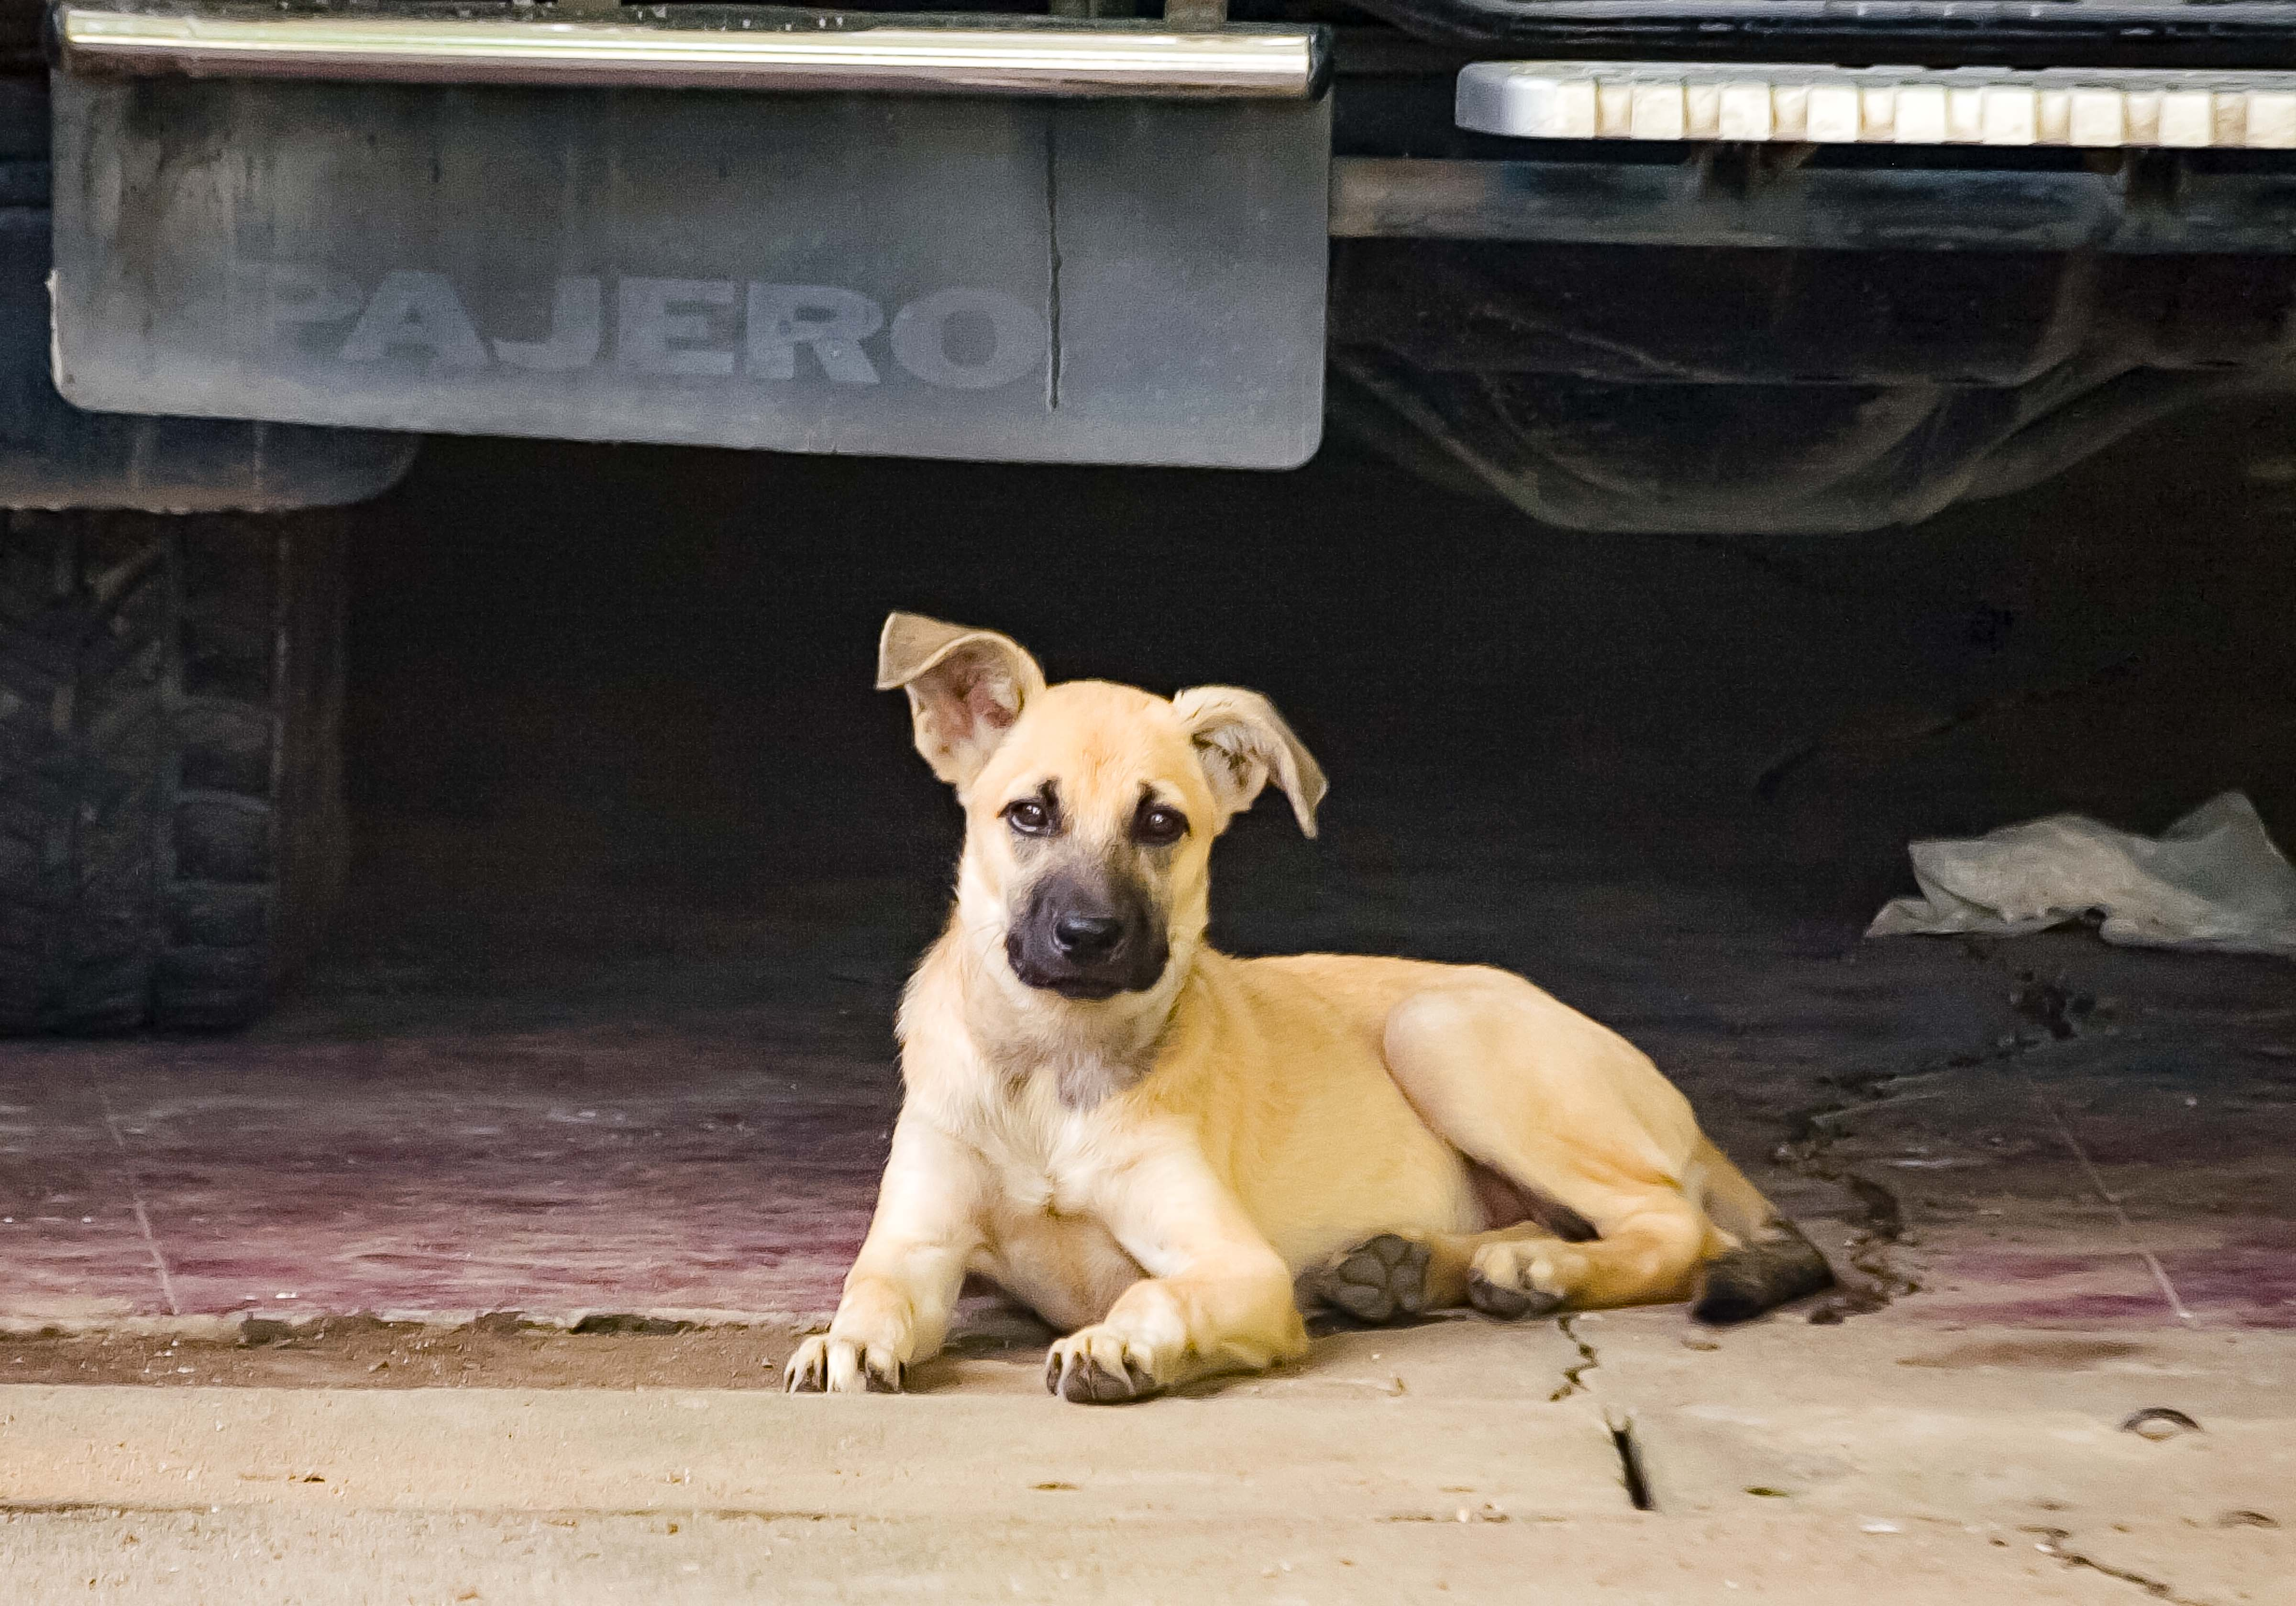 Philippines-Bataan Dog And Car, 2007